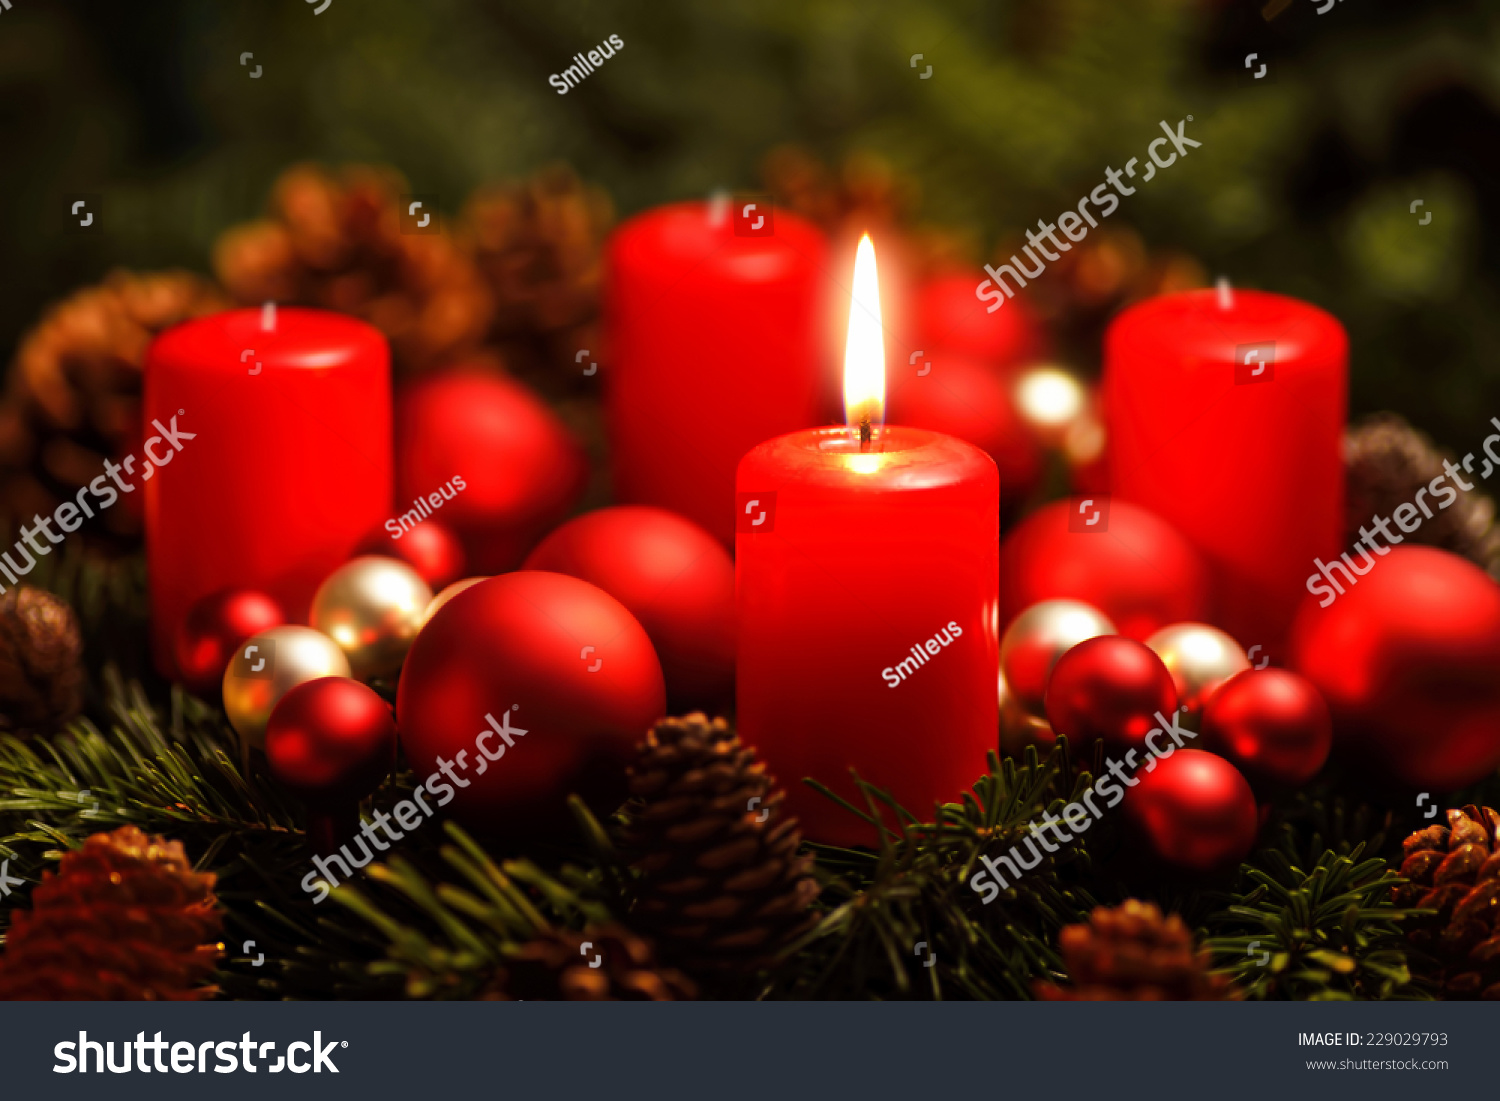 low key studio shot of a nice advent wreath with baubles. Black Bedroom Furniture Sets. Home Design Ideas